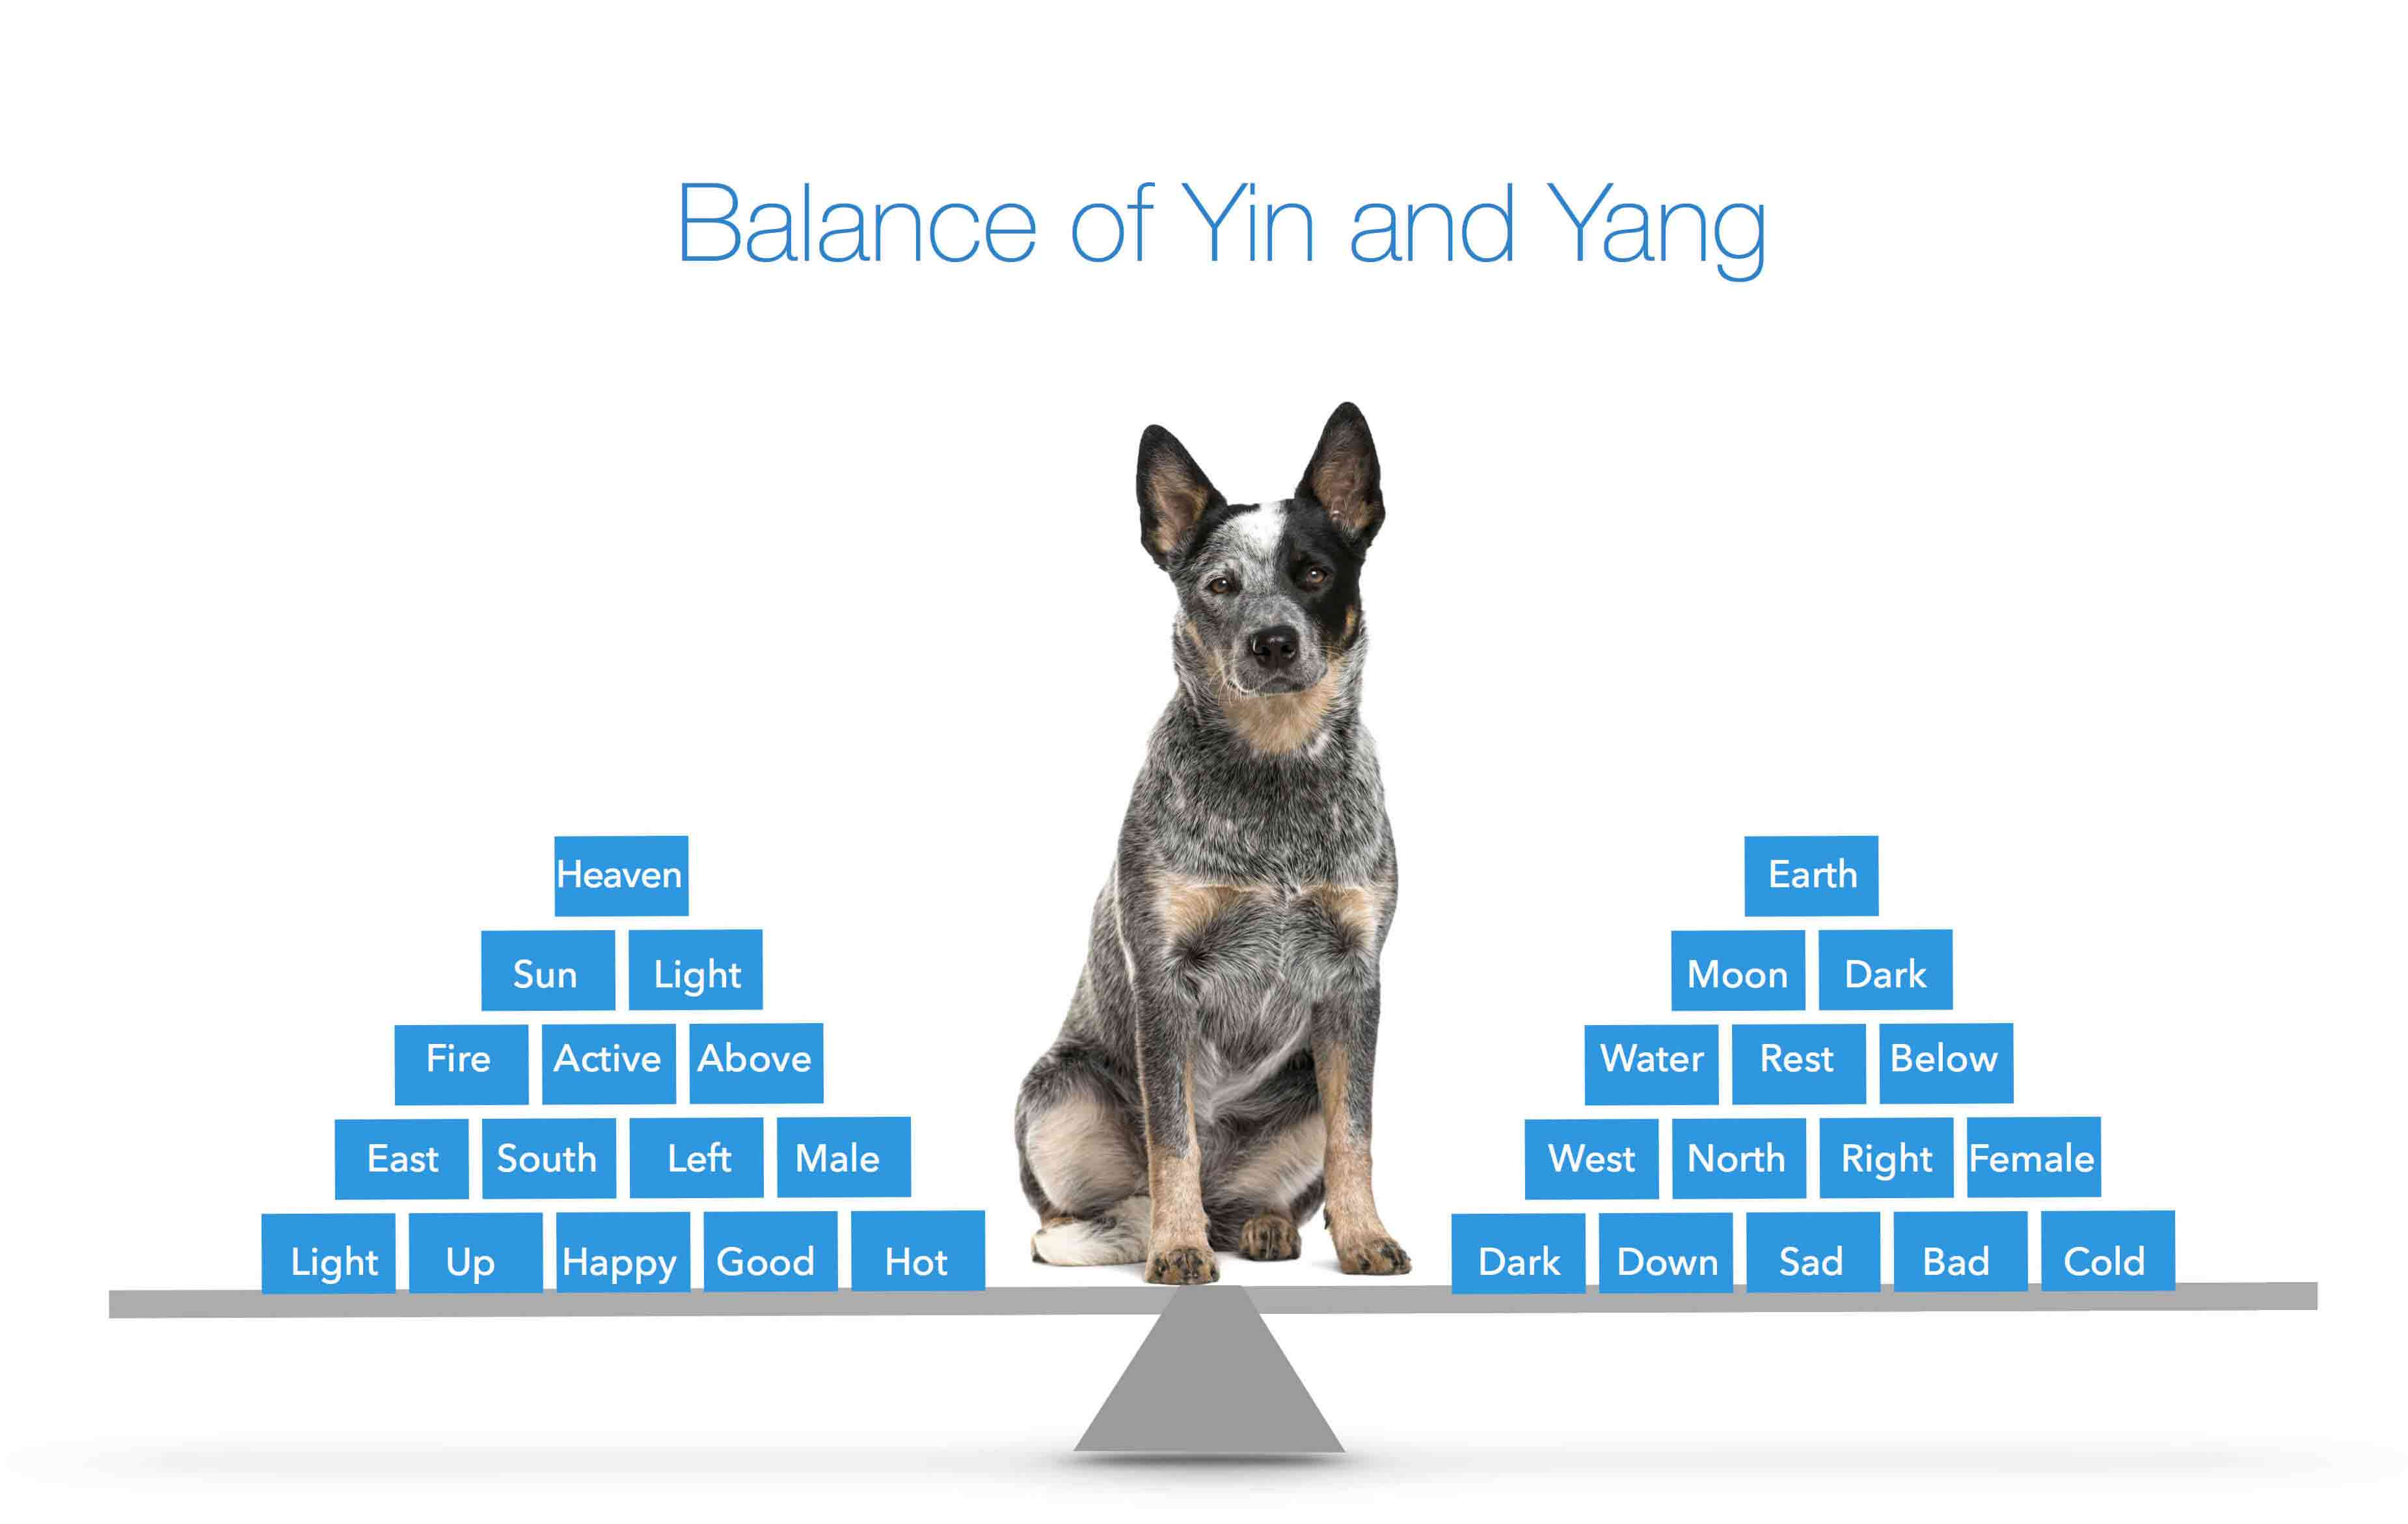 Yin and Yang Theory for Dogs